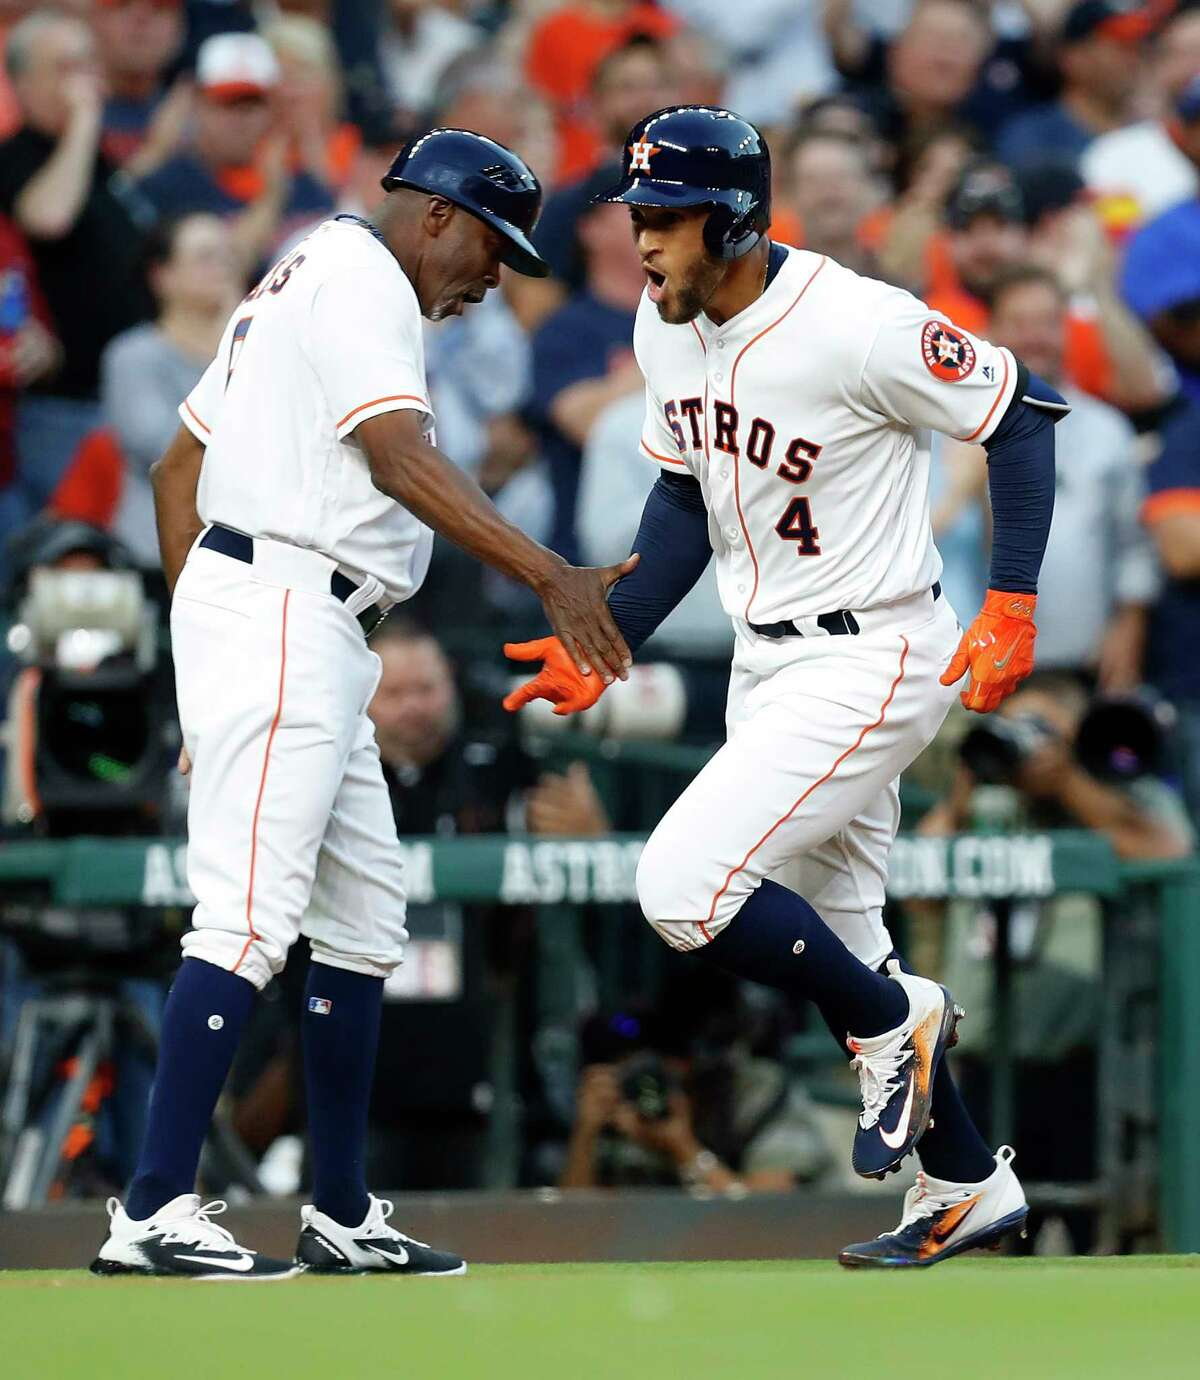 Houston Astros right fielder George Springer (4) celebrates his home run with third base coach Gary Pettis (8) in the first inning of the Houston Astros at Minute Maid Park, Friday, March 31, 2017, in Houston.